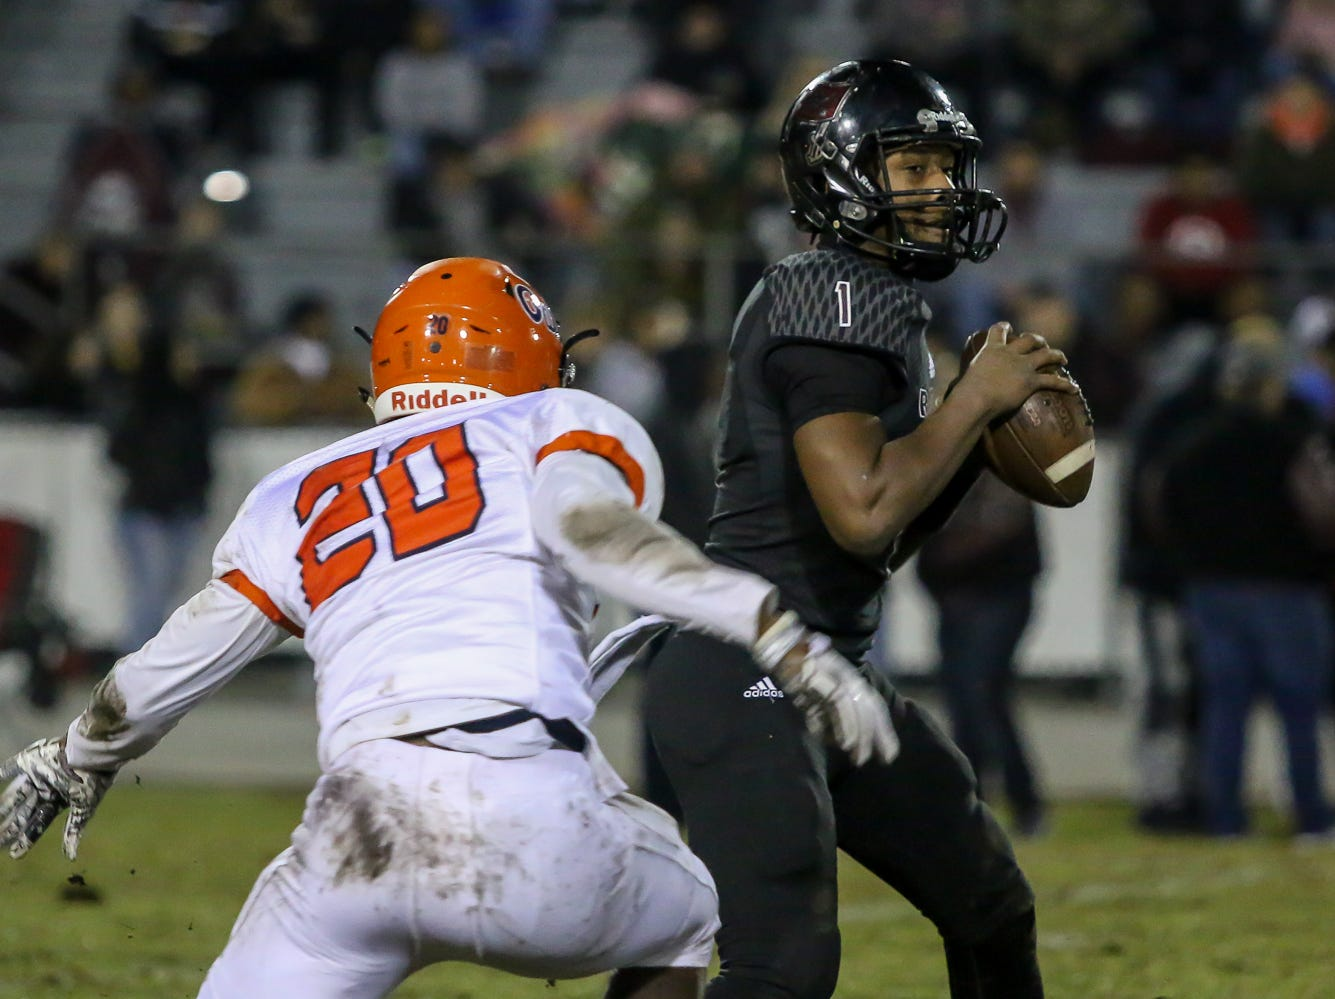 Navarre quarterback Marlon Courtney III (1) stays in the pocket and passes the ball before Escambia's Tyshan Edwards (20) can get to him in the Region 1-6A Semifinal game at Navarre High School on Friday, November 16, 2018.